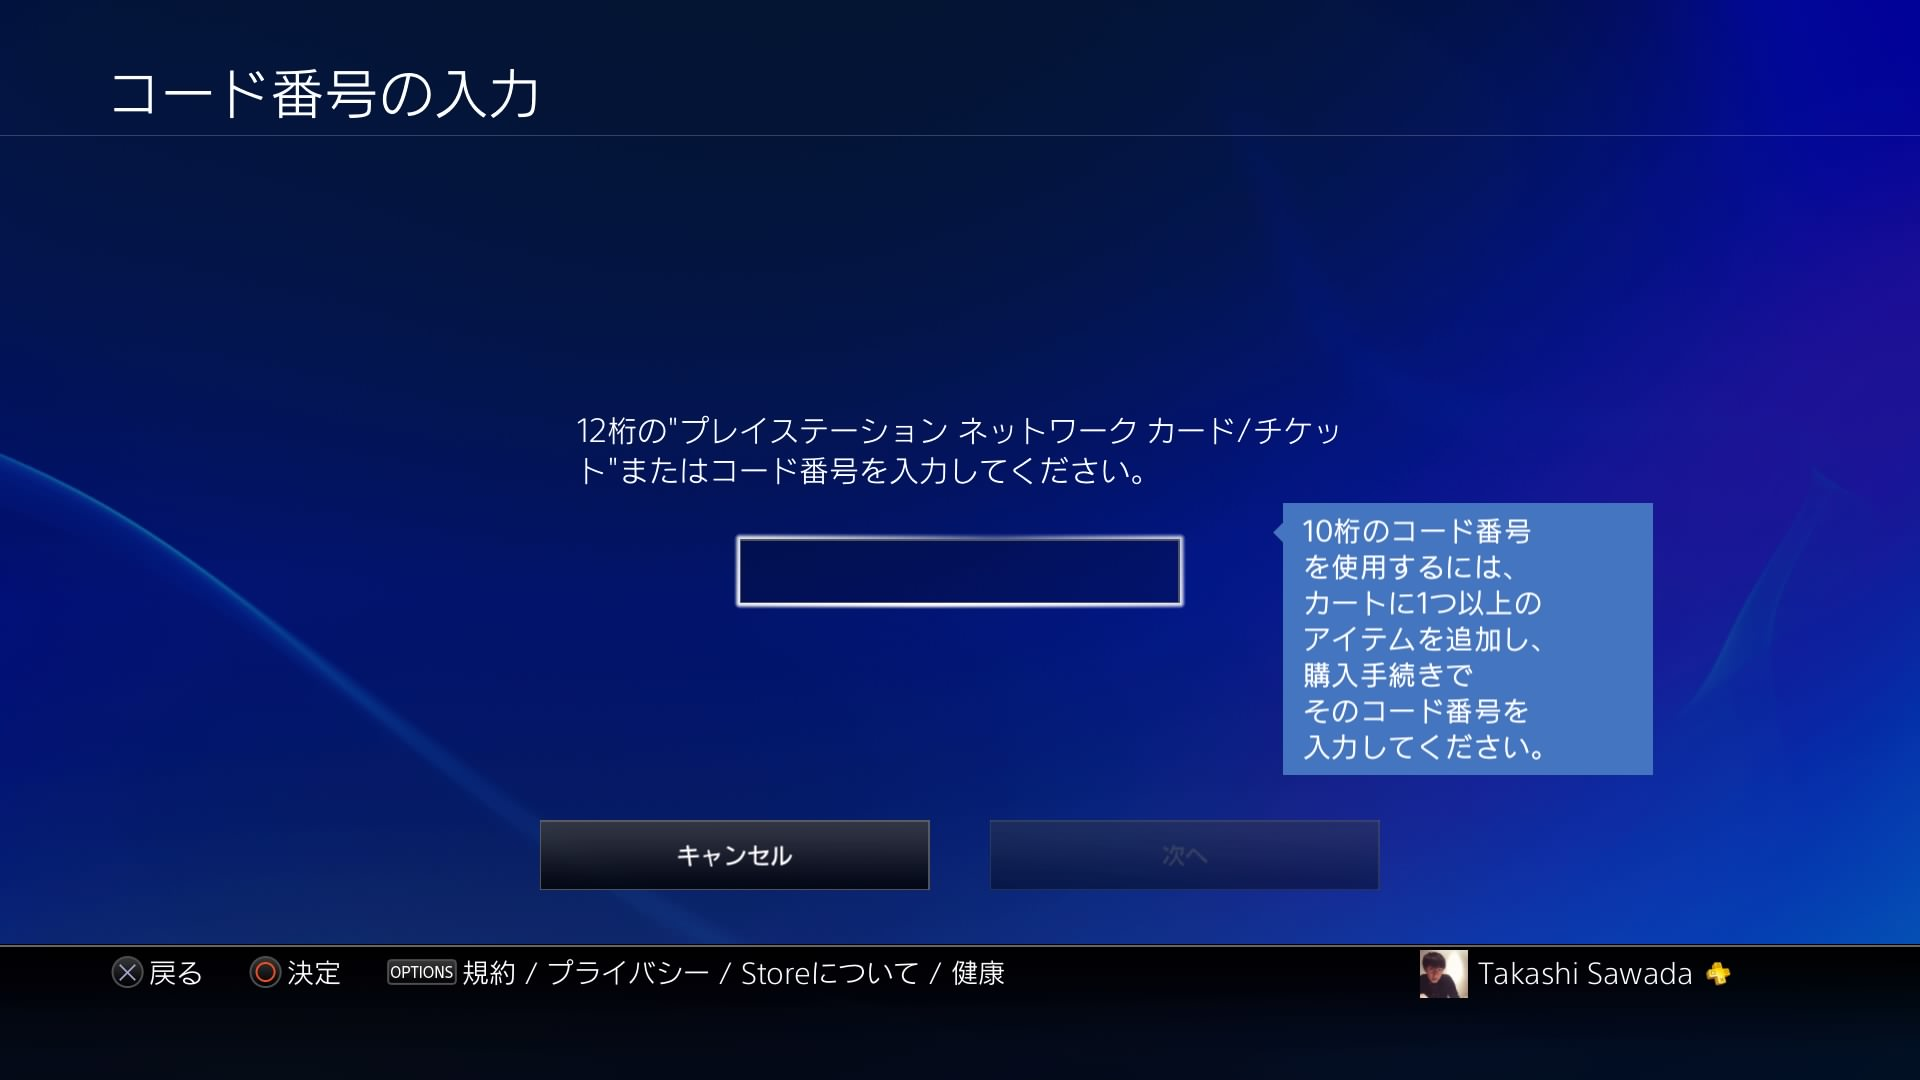 How to download product code contents for playstation 4 2